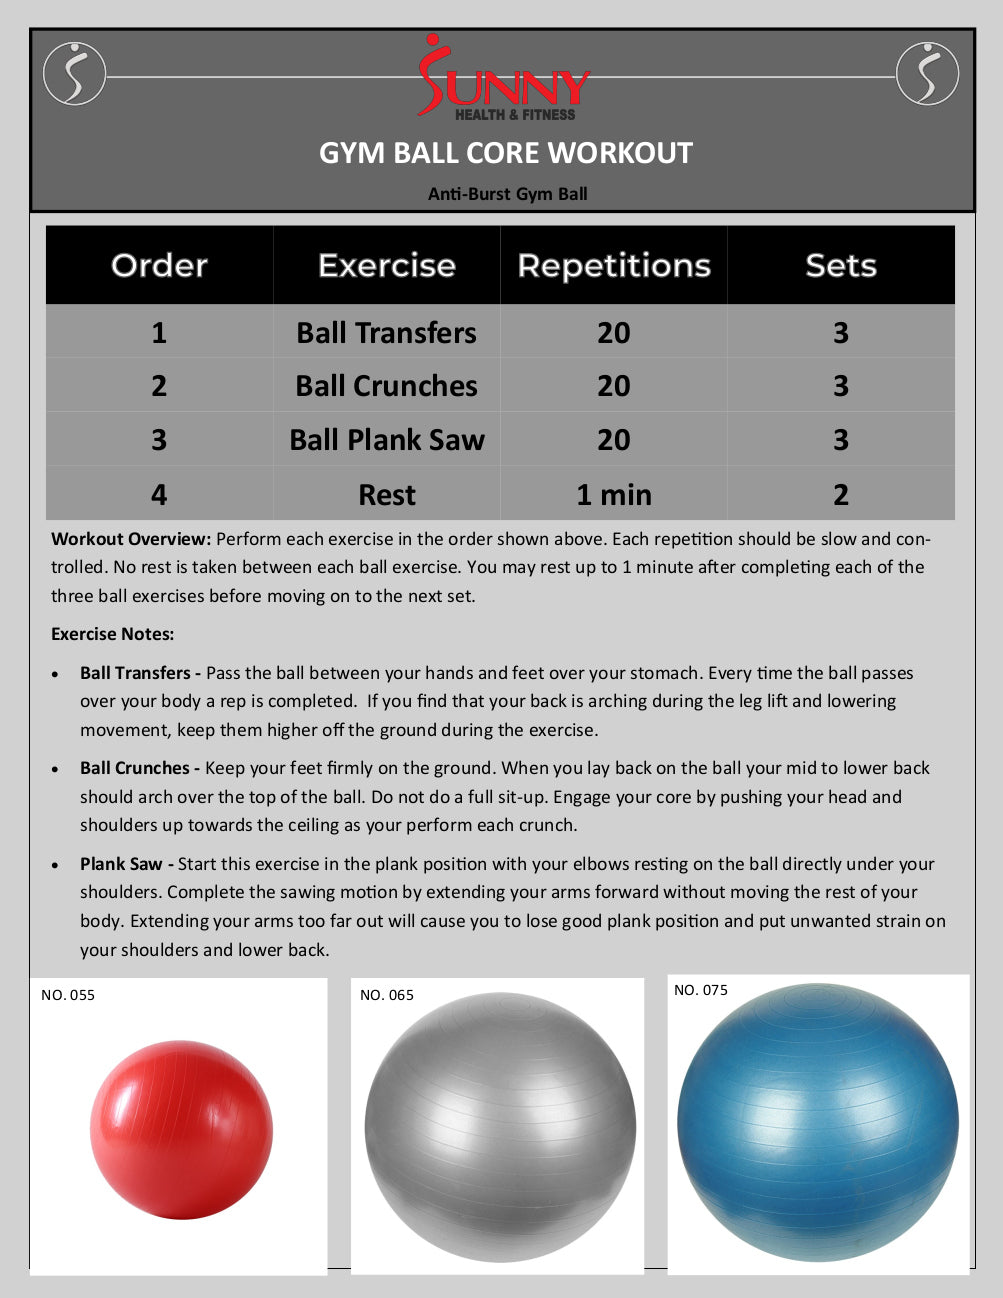 gym ball core workout program chart